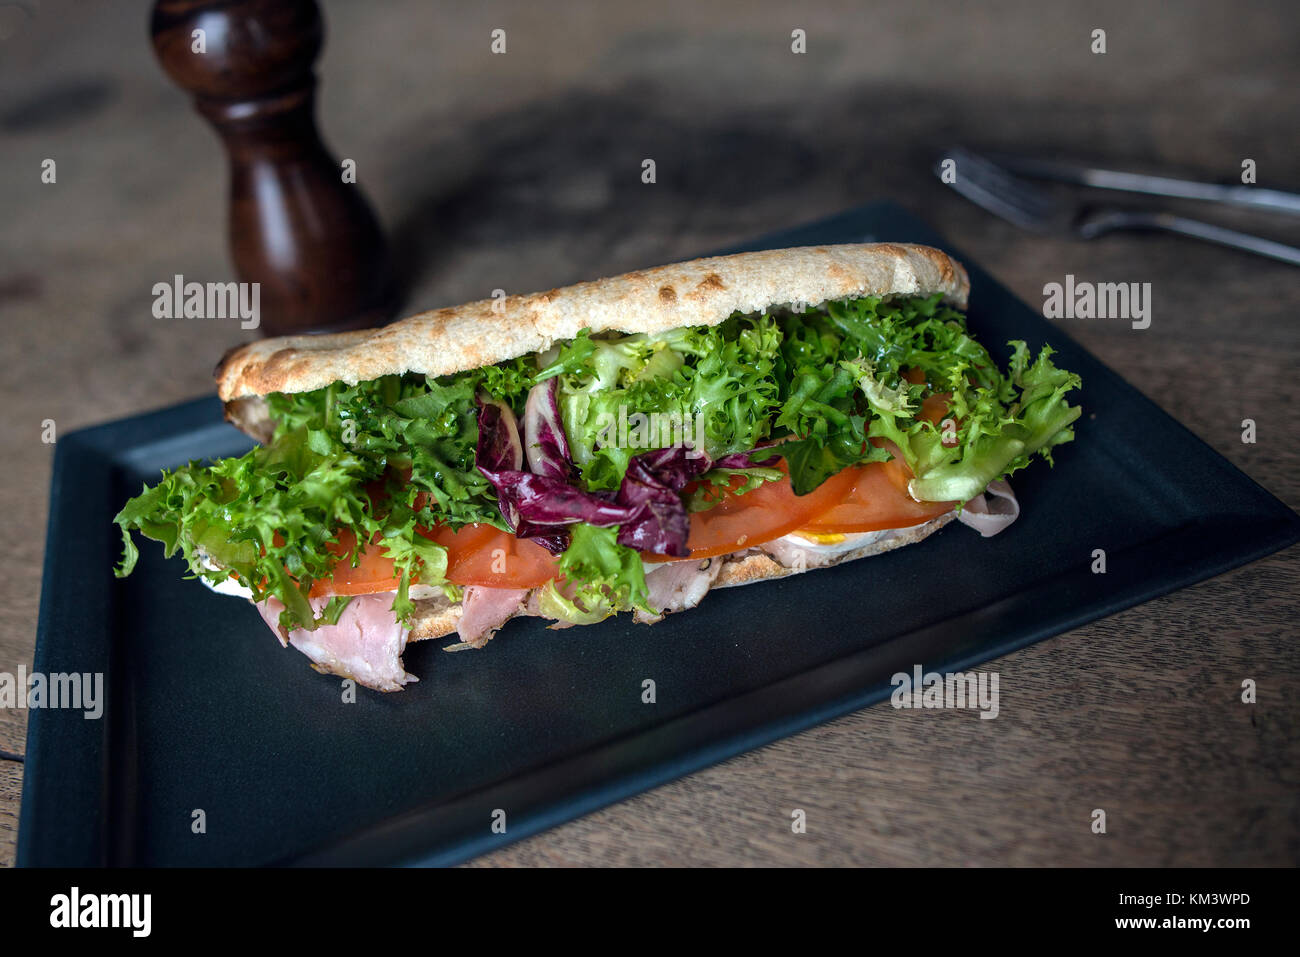 Authentic Italian Pizza on Rustic Surface - Stock Image